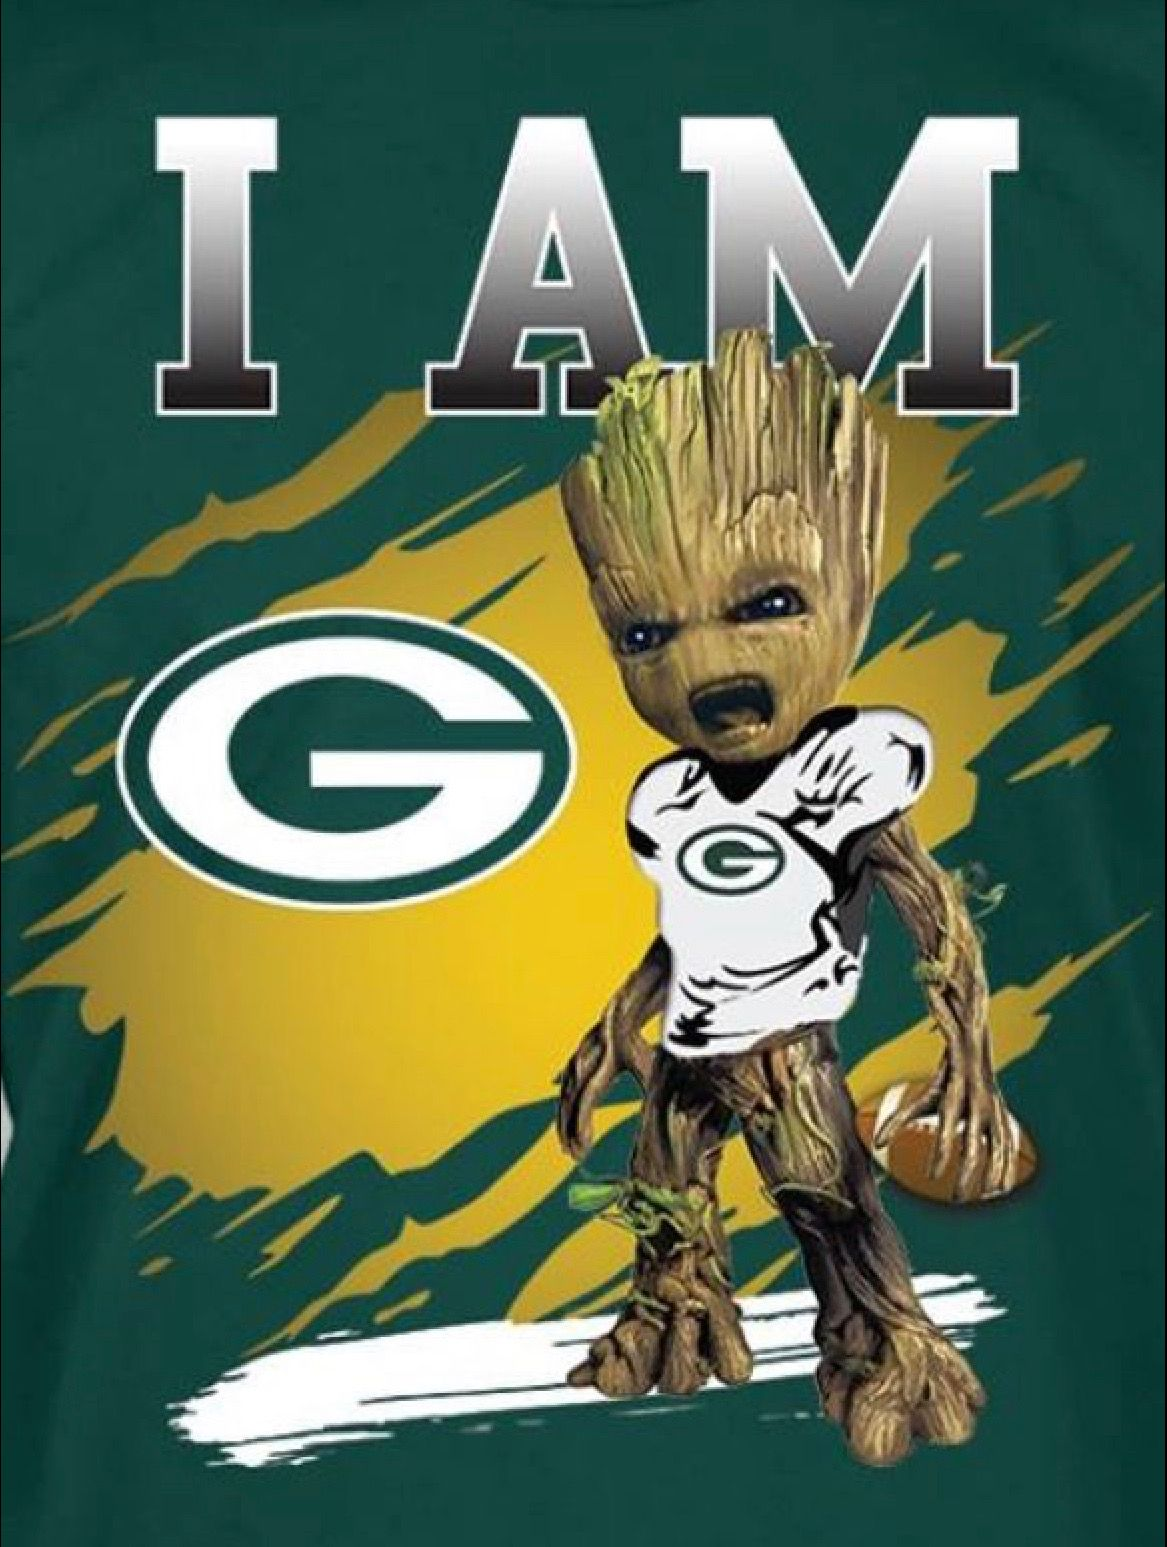 Pin By Mark H On Packers Green Bay Packers Wallpaper Green Bay Packers Funny Green Bay Packers Clothing